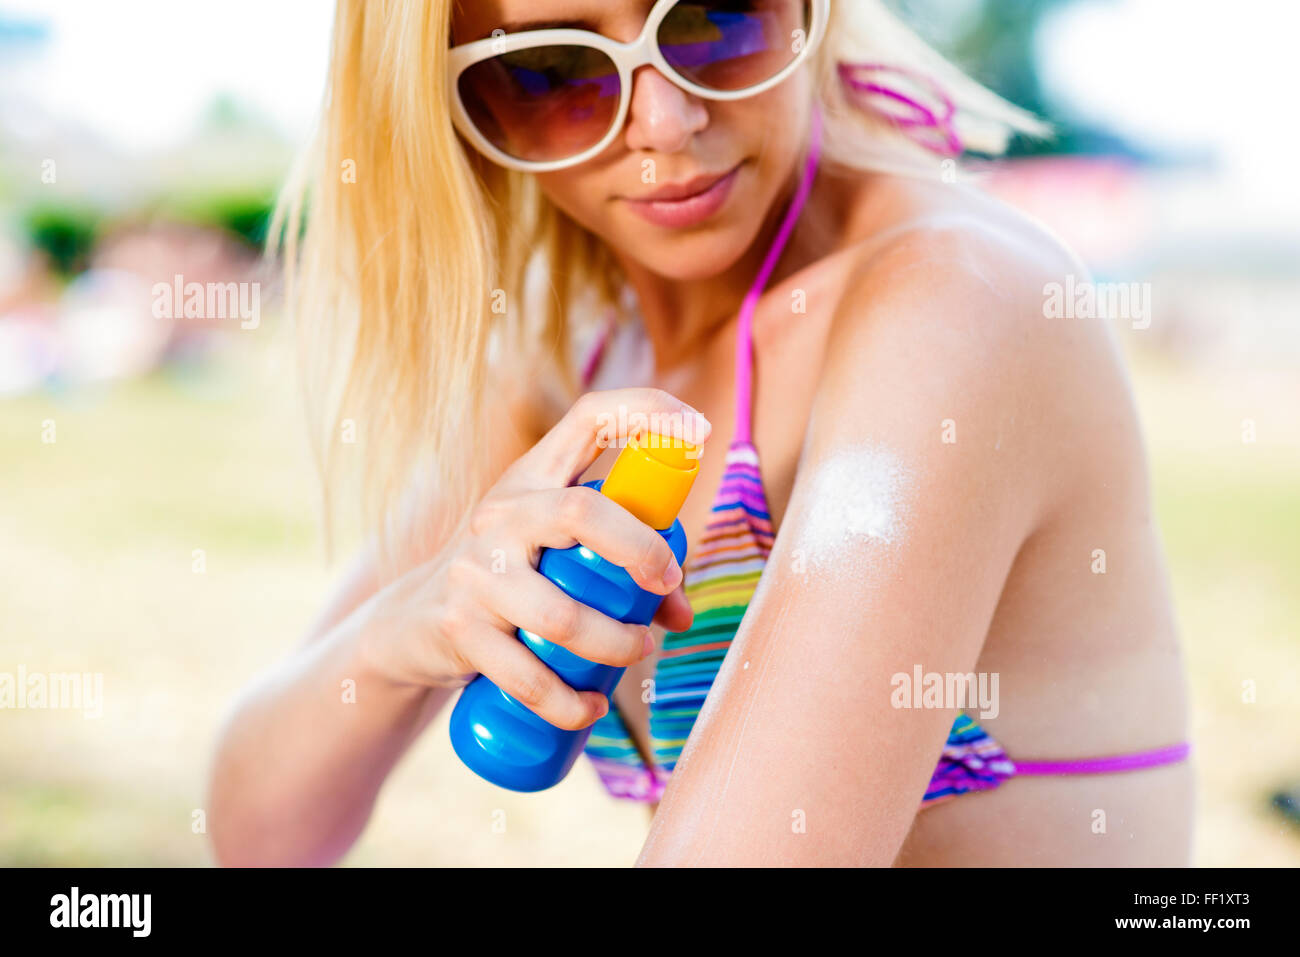 Blond woman in bikini and sunglasses putting on sunscreen - Stock Image